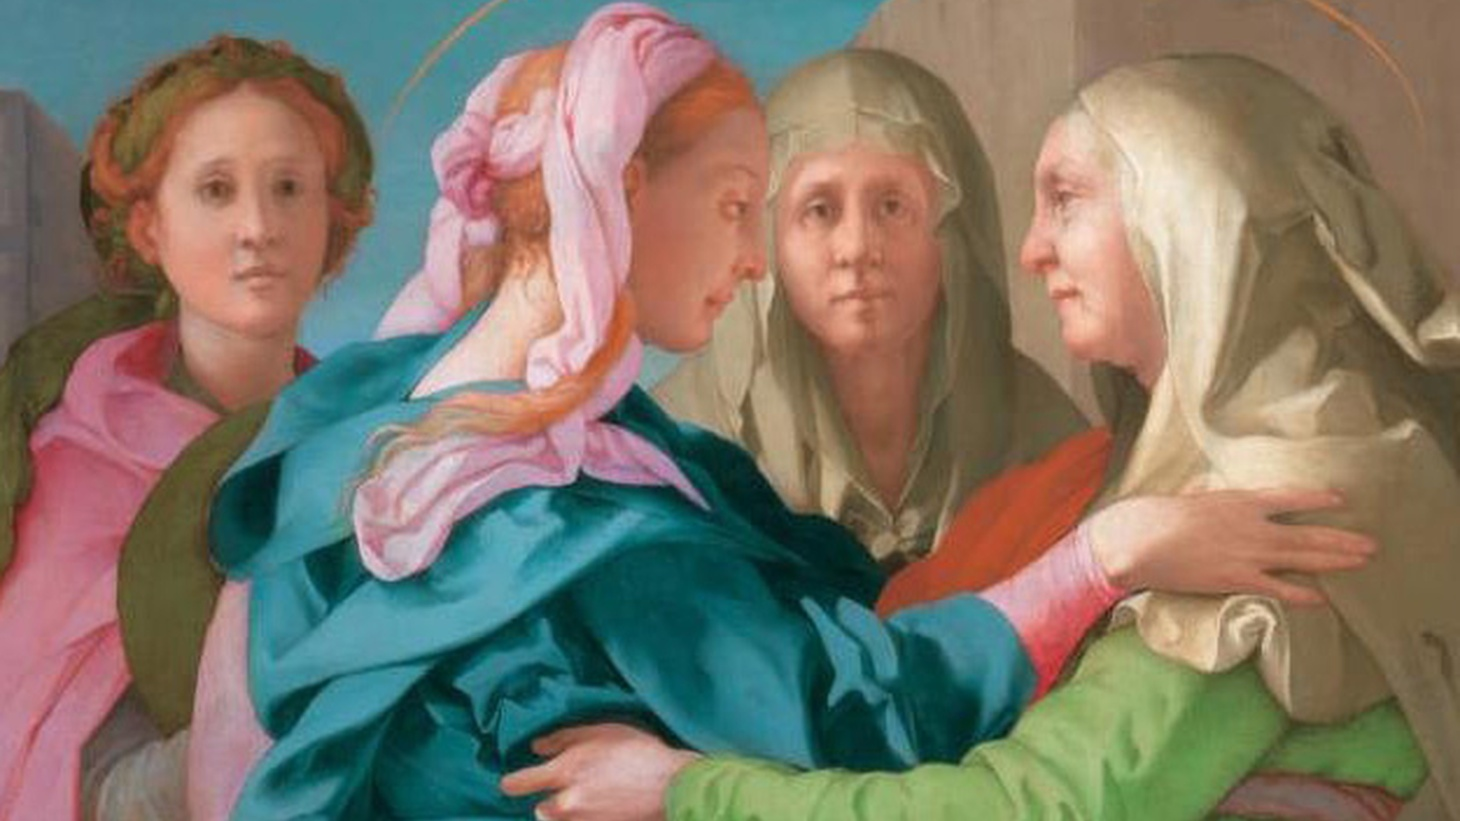 Edward Goldman talks about the great 16  th   century Italian painter Pontormo, on display at The Getty Museum as a rare example of centuries-old art that continues to visually and emotionally engage contemporary audiences.